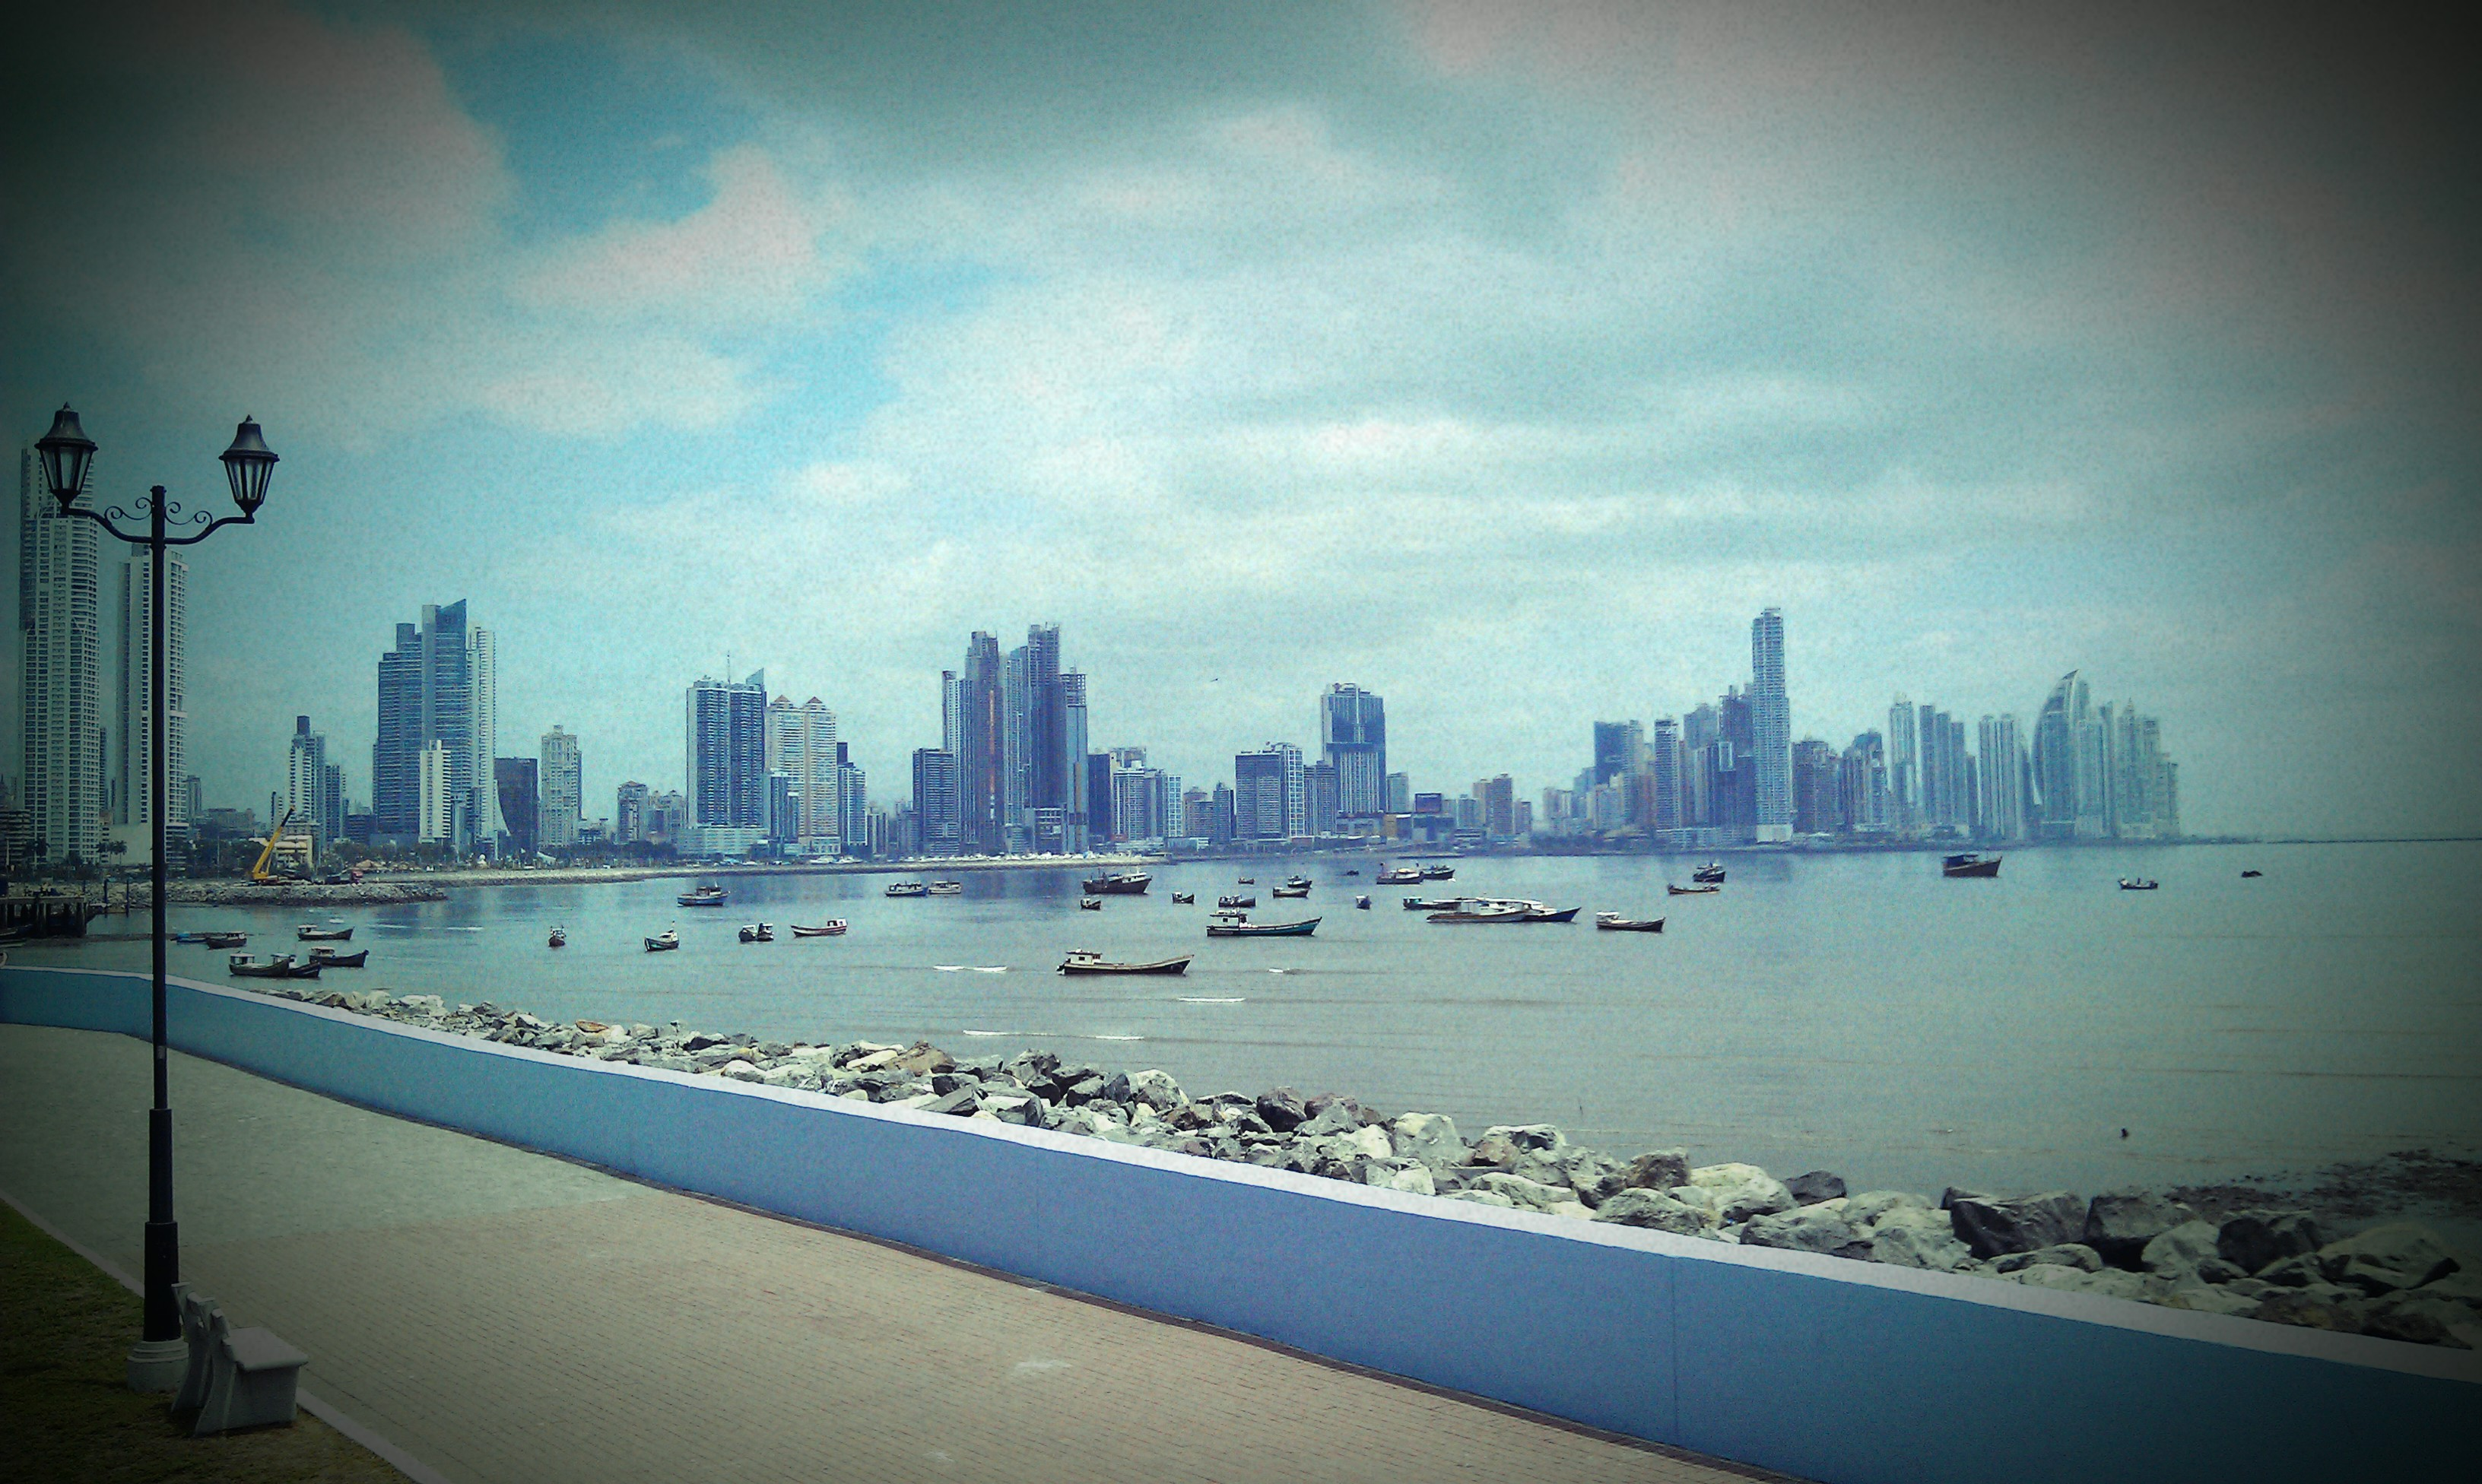 Skyscrapers in Panama City, Panama